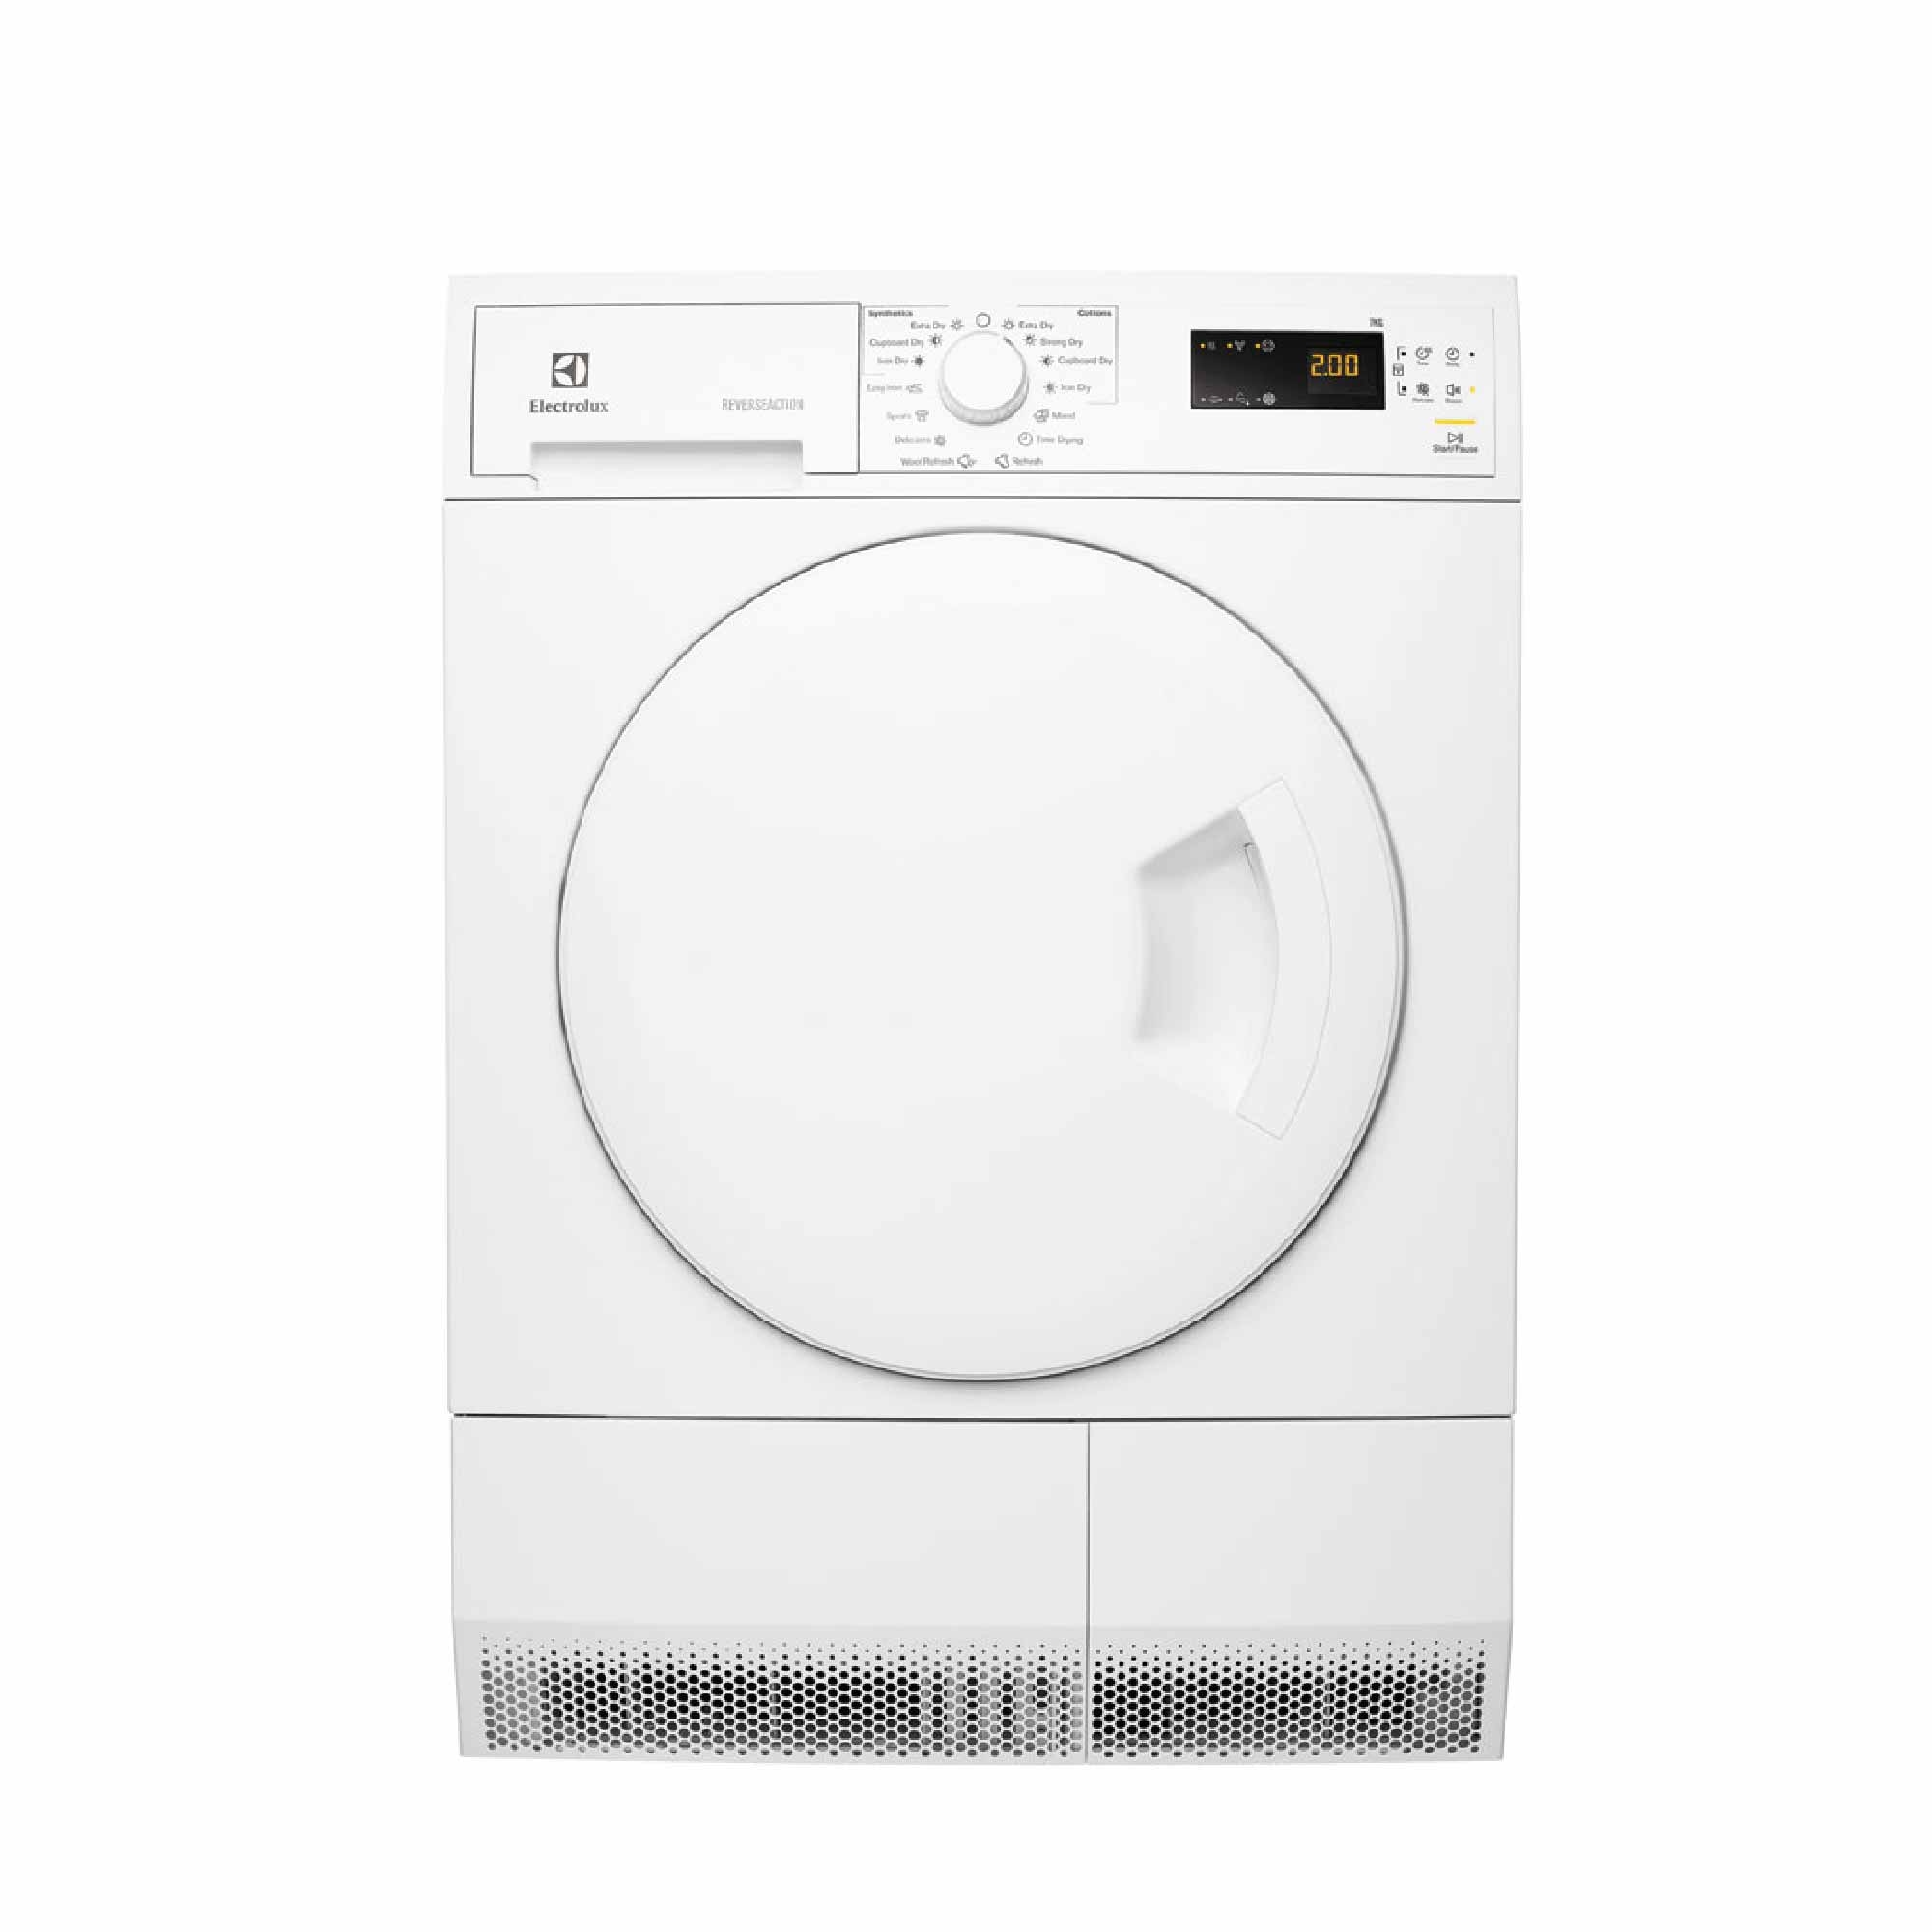 Electrolux Condenser Dryer Electrolux Dryer Machine Edp2074pdw End 9 6 2020 4 41 Pm